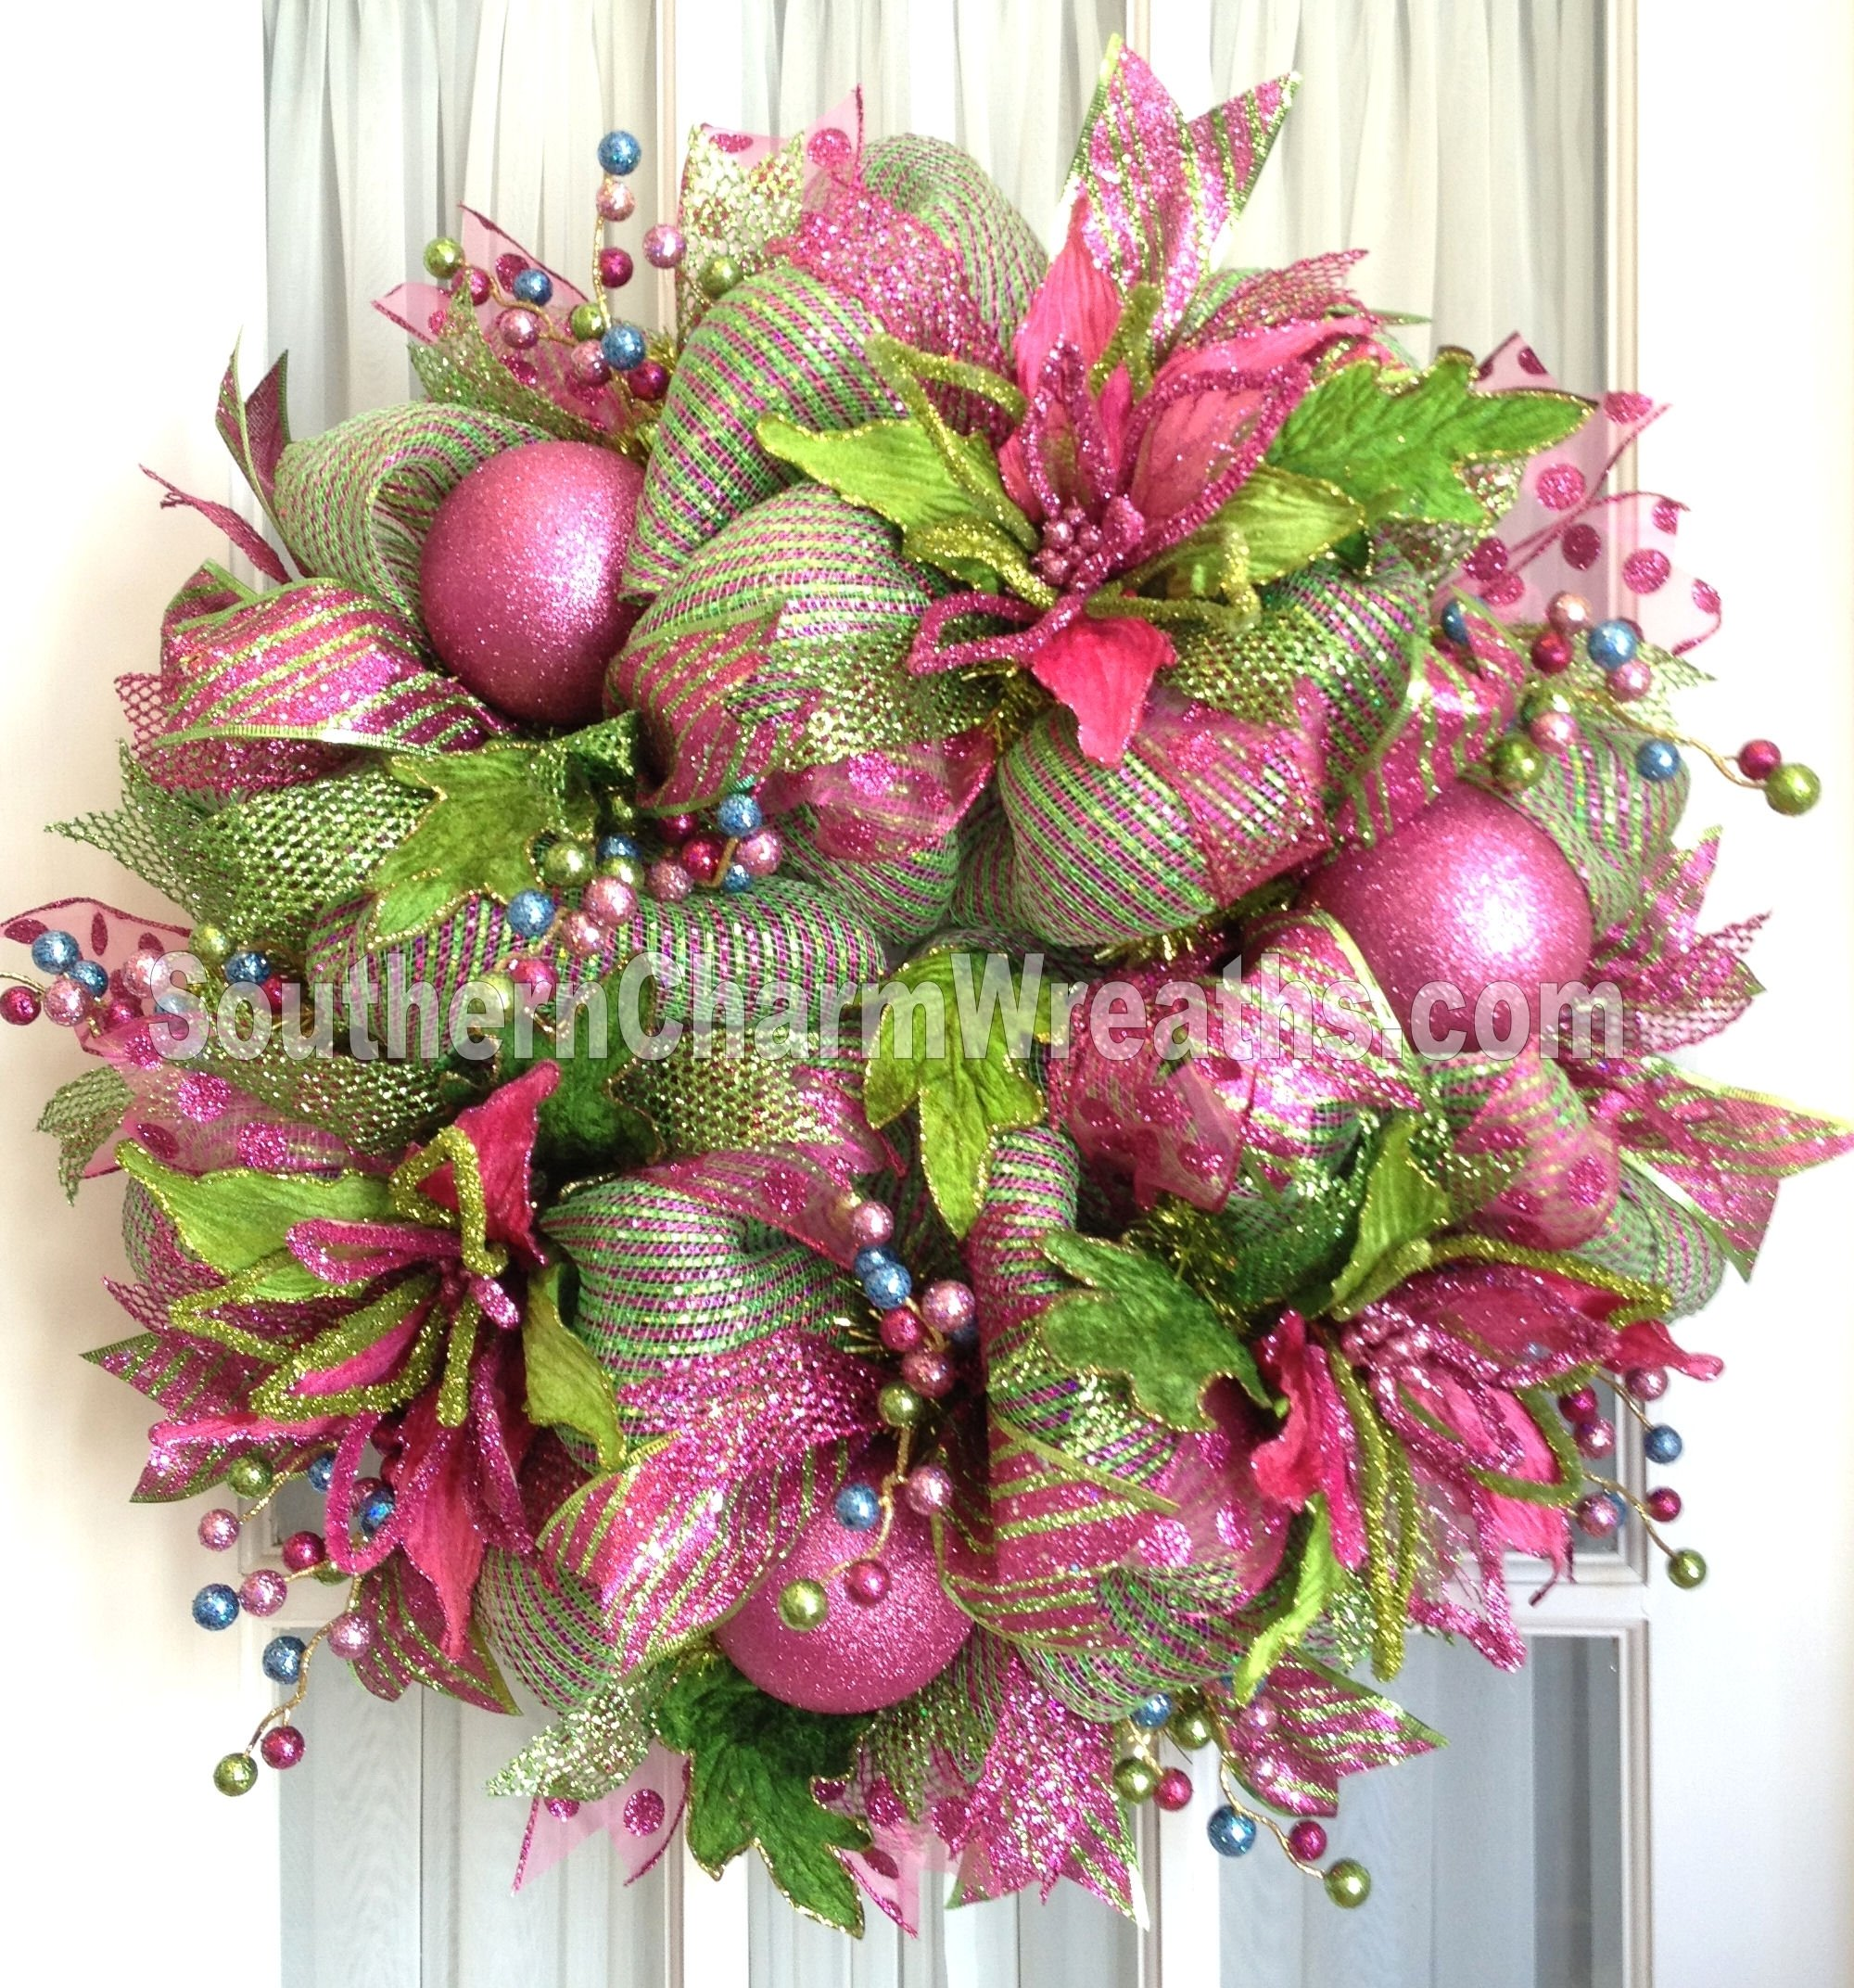 10 Cute Easter Deco Mesh Wreath Ideas deco mesh wreath ideas nisartmacka